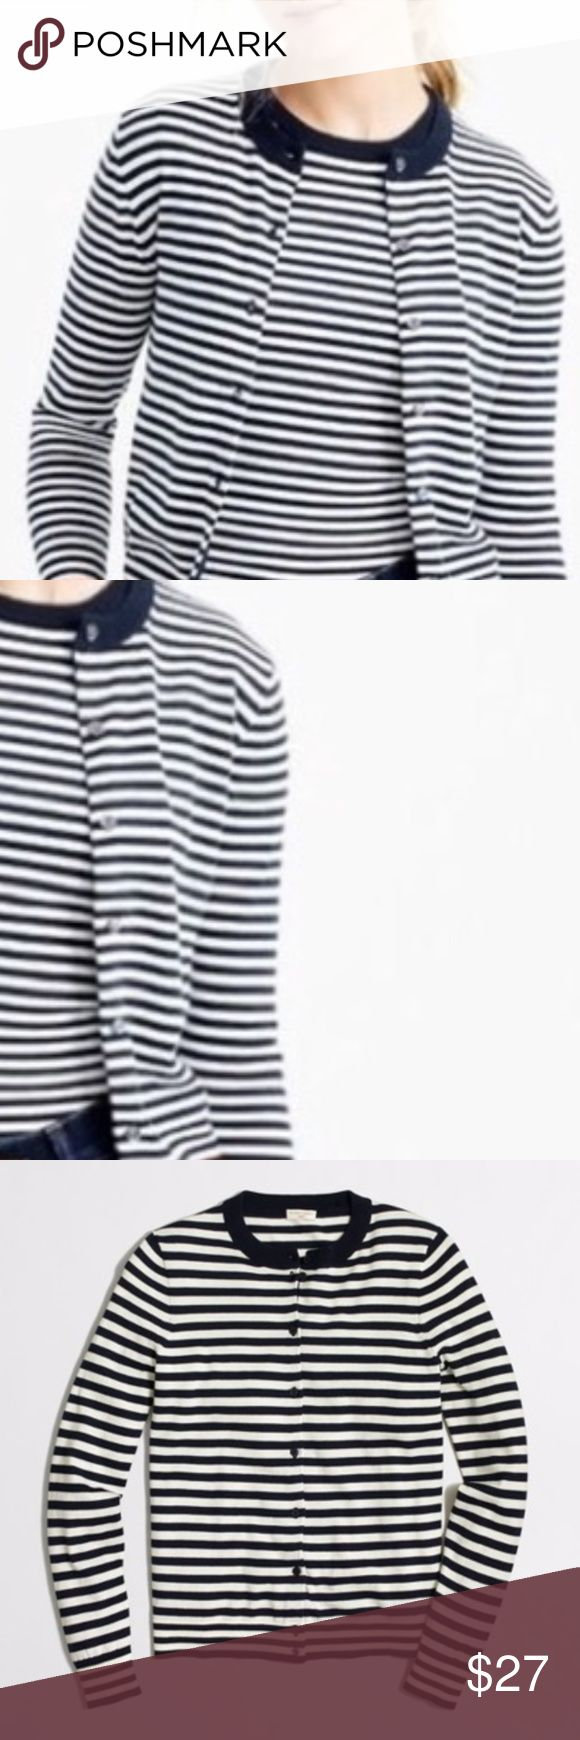 J. Crew The Caryn Cardigan Striped Nautical Cardigan  100% Cotton  EUC- Worn ONCE!  No Flaws!  Buttons all perfectly in tact! :)  True to Size  *IMO- The Stripes are NAVY and CREAM Others may say it's black and white....Again, to me, pictures 1 and 2 best reflect color so I'm going to list the colors as blue and cream :). J. Crew Sweaters Cardigans